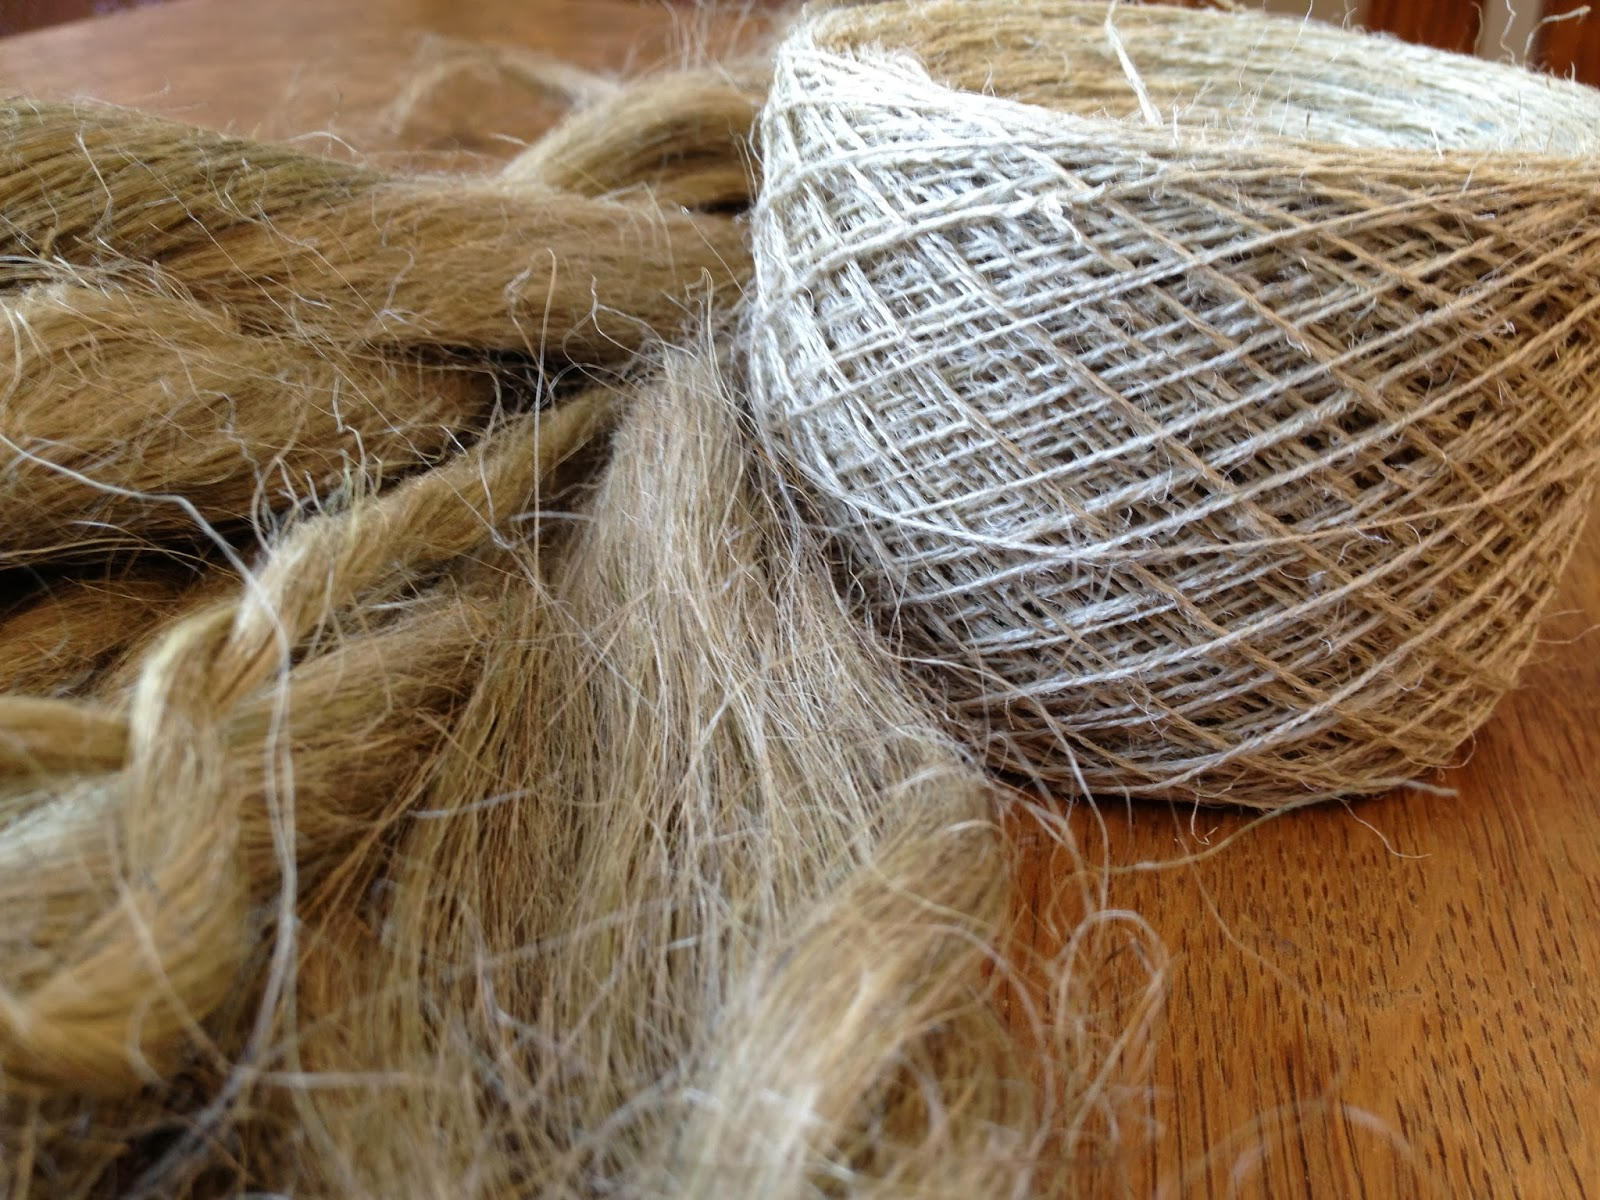 The Inconsequential Blogger: Spinning flax into linen yarn